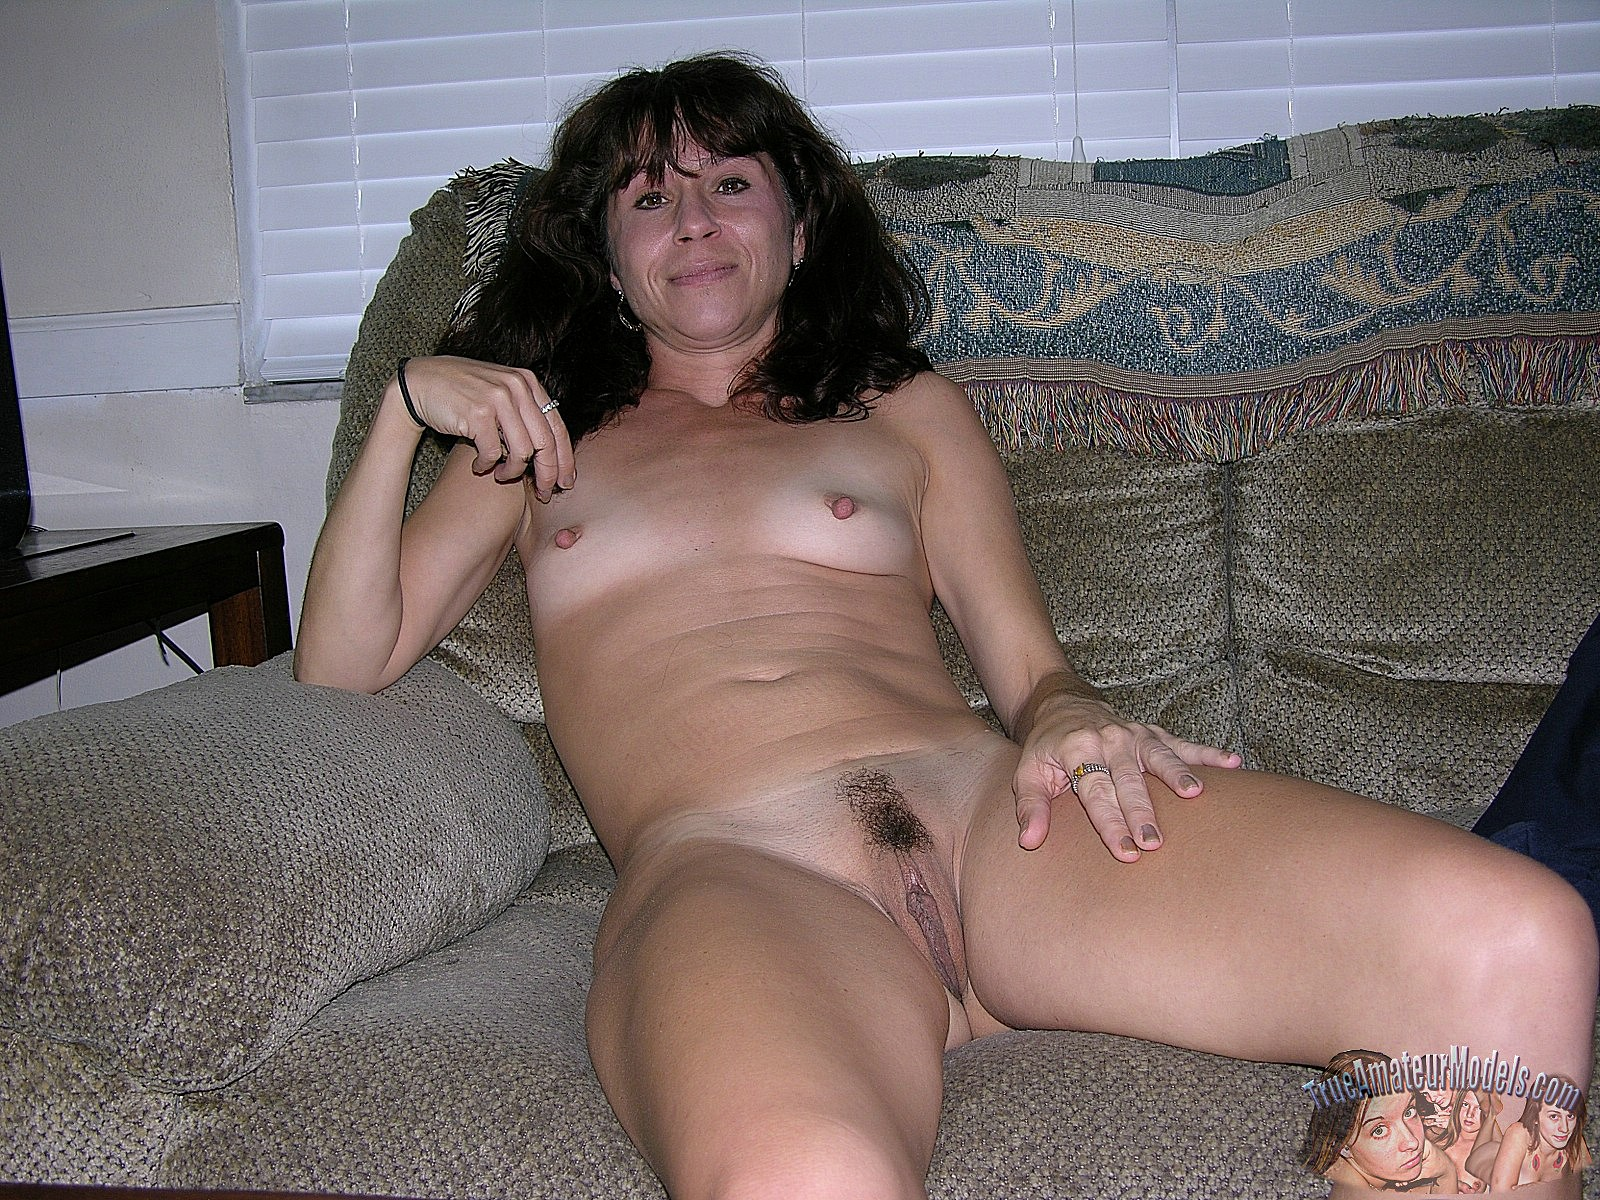 nude-mature-model-photos